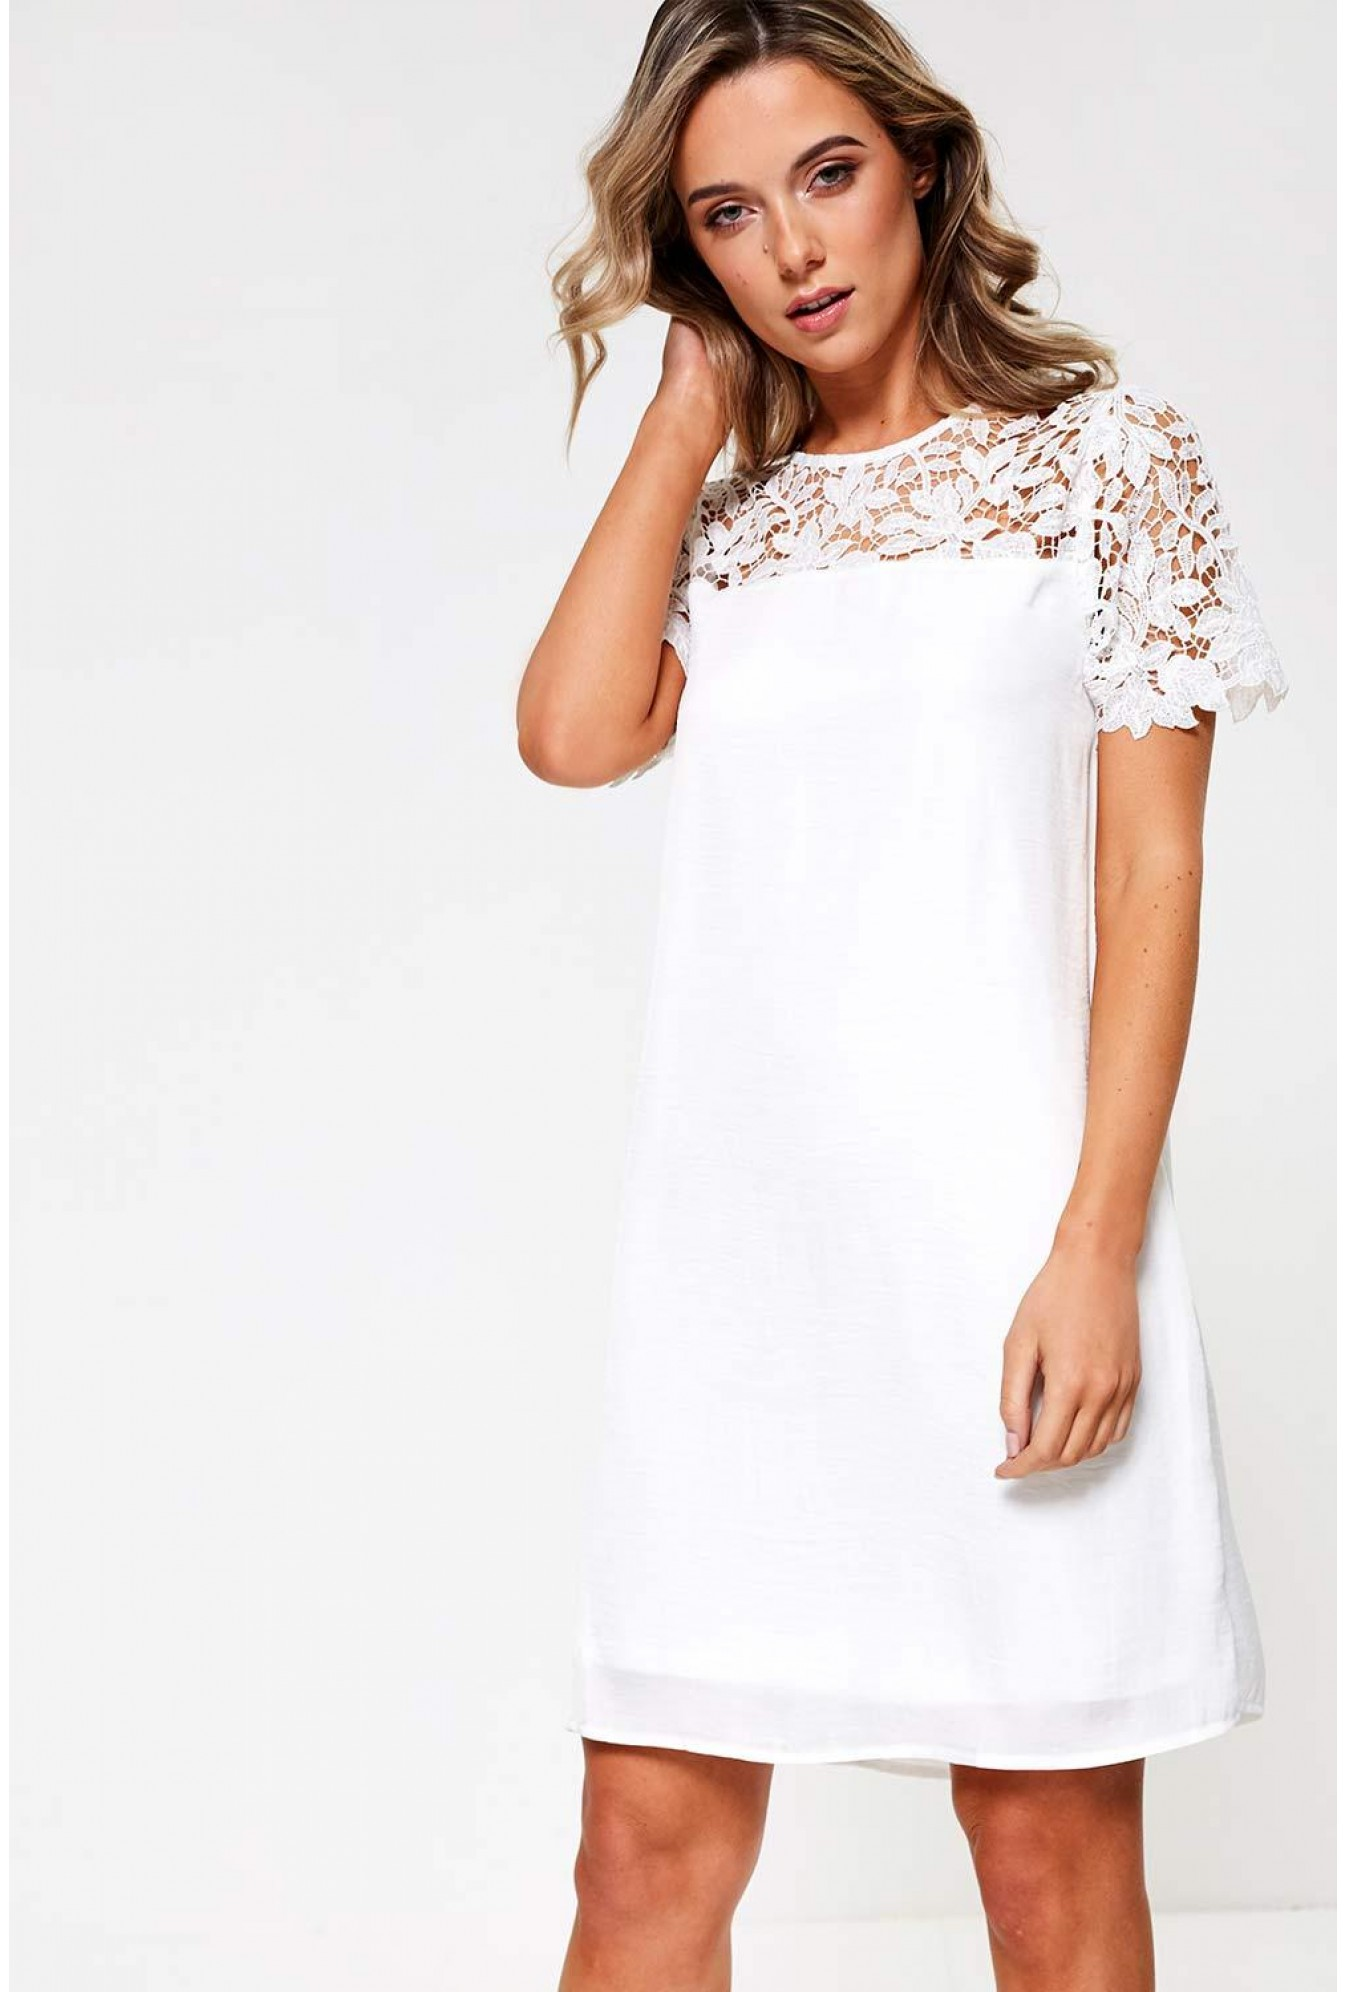 35a14bb971f0 Vila Melli Lace Top Tunic Dress in White | iCLOTHING